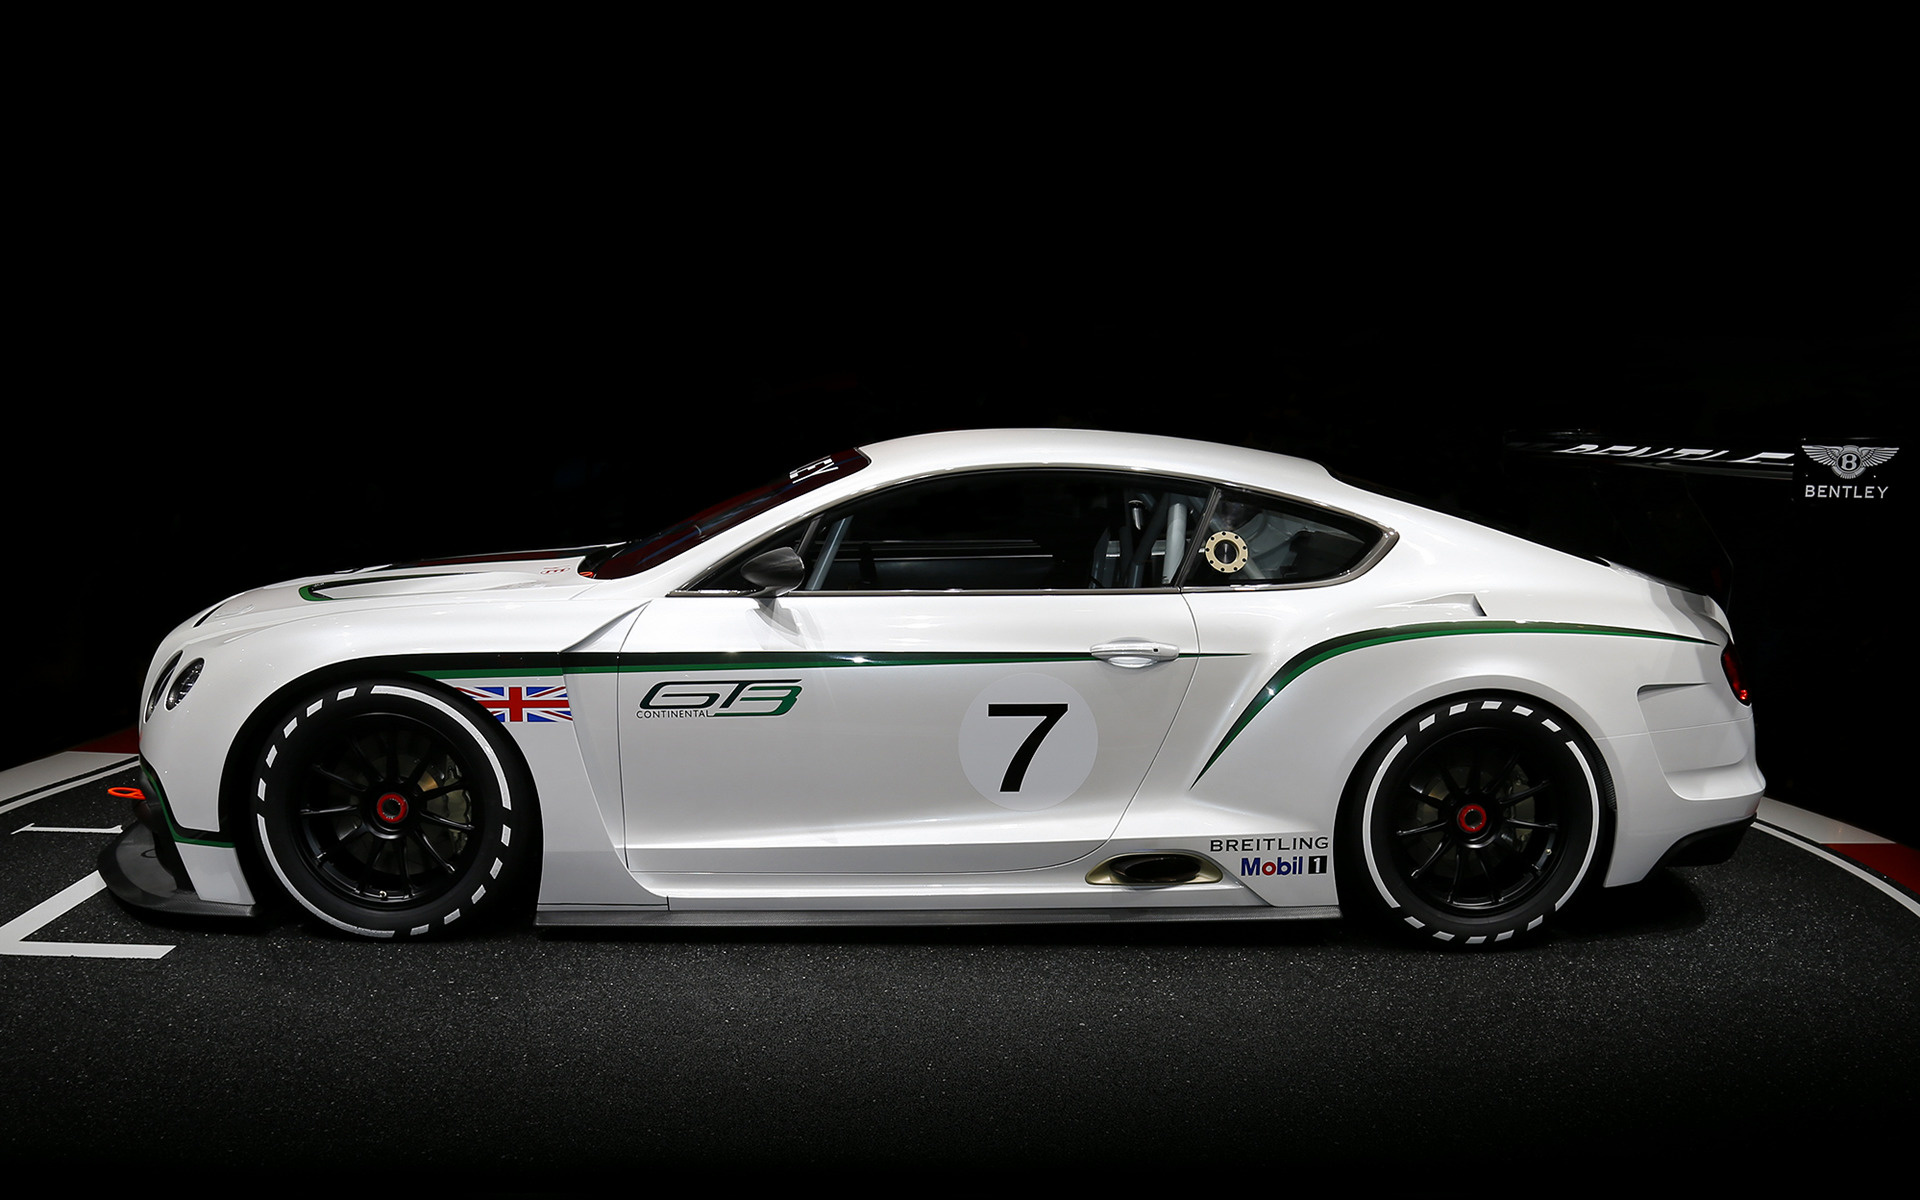 Bentley Continental GT3 Concept (2012) Wallpapers and HD Images - Car ...